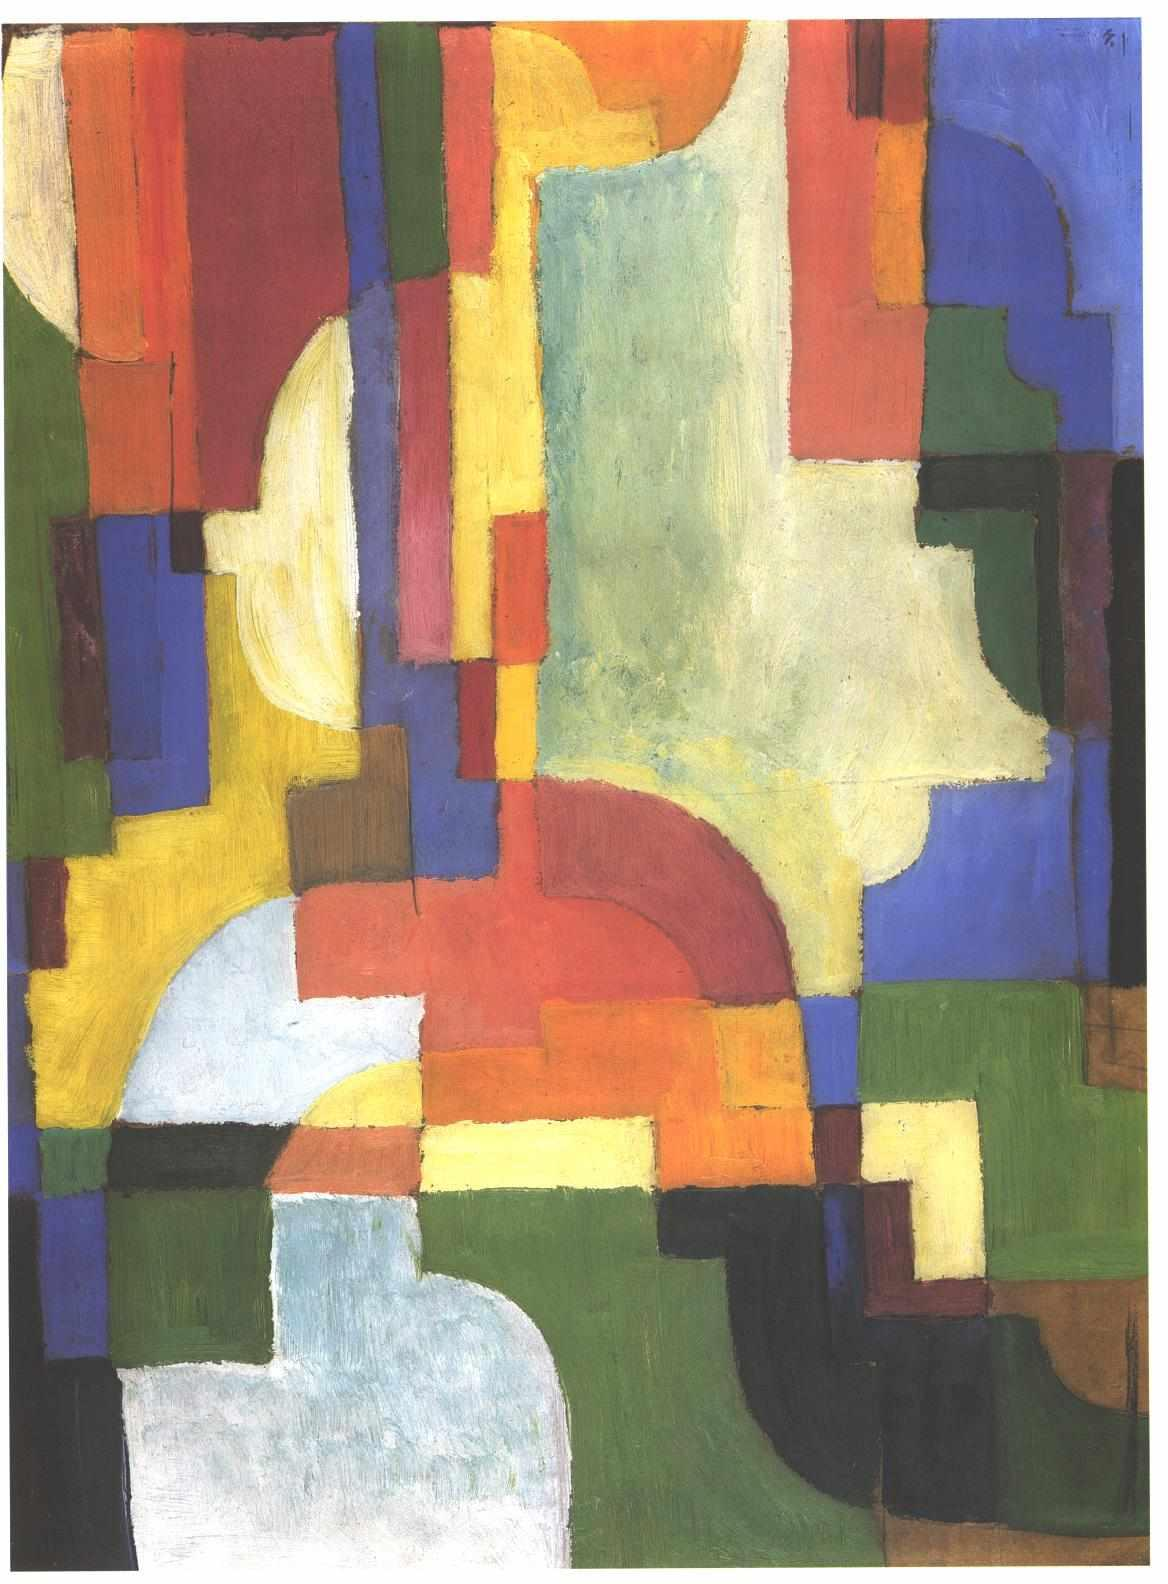 Colourfull shapes - August Macke